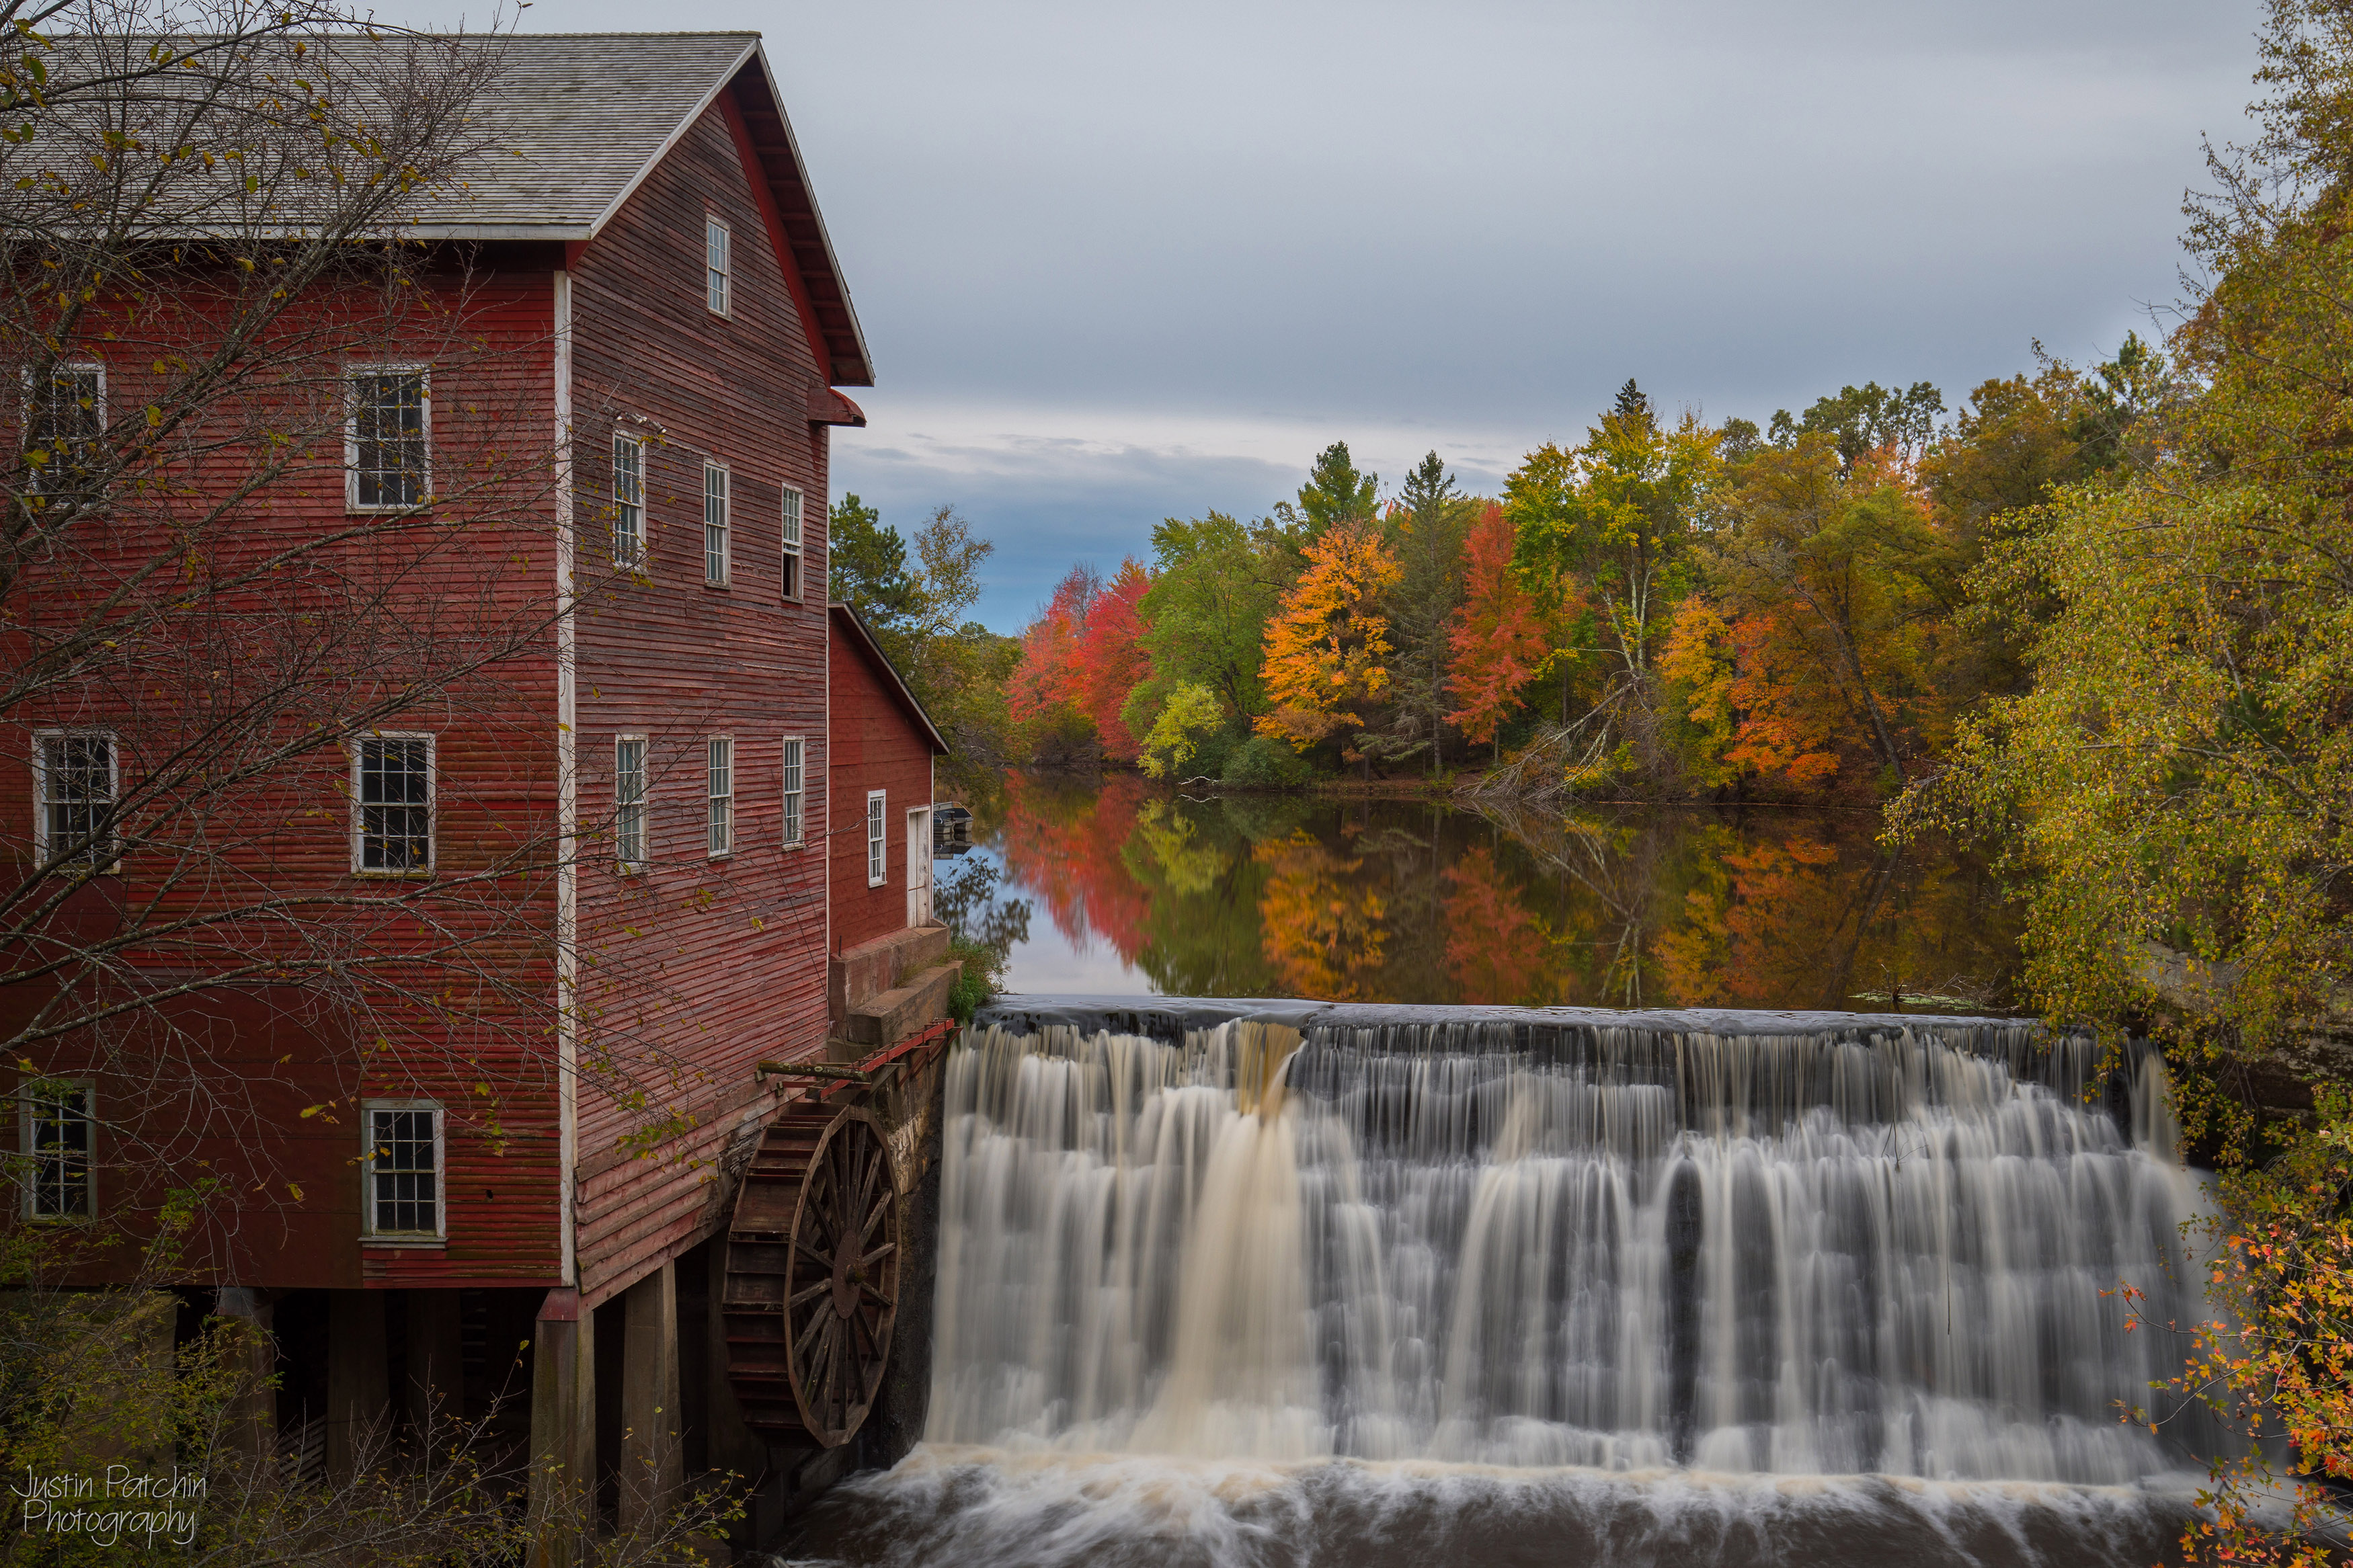 Autumn at Dells Mill